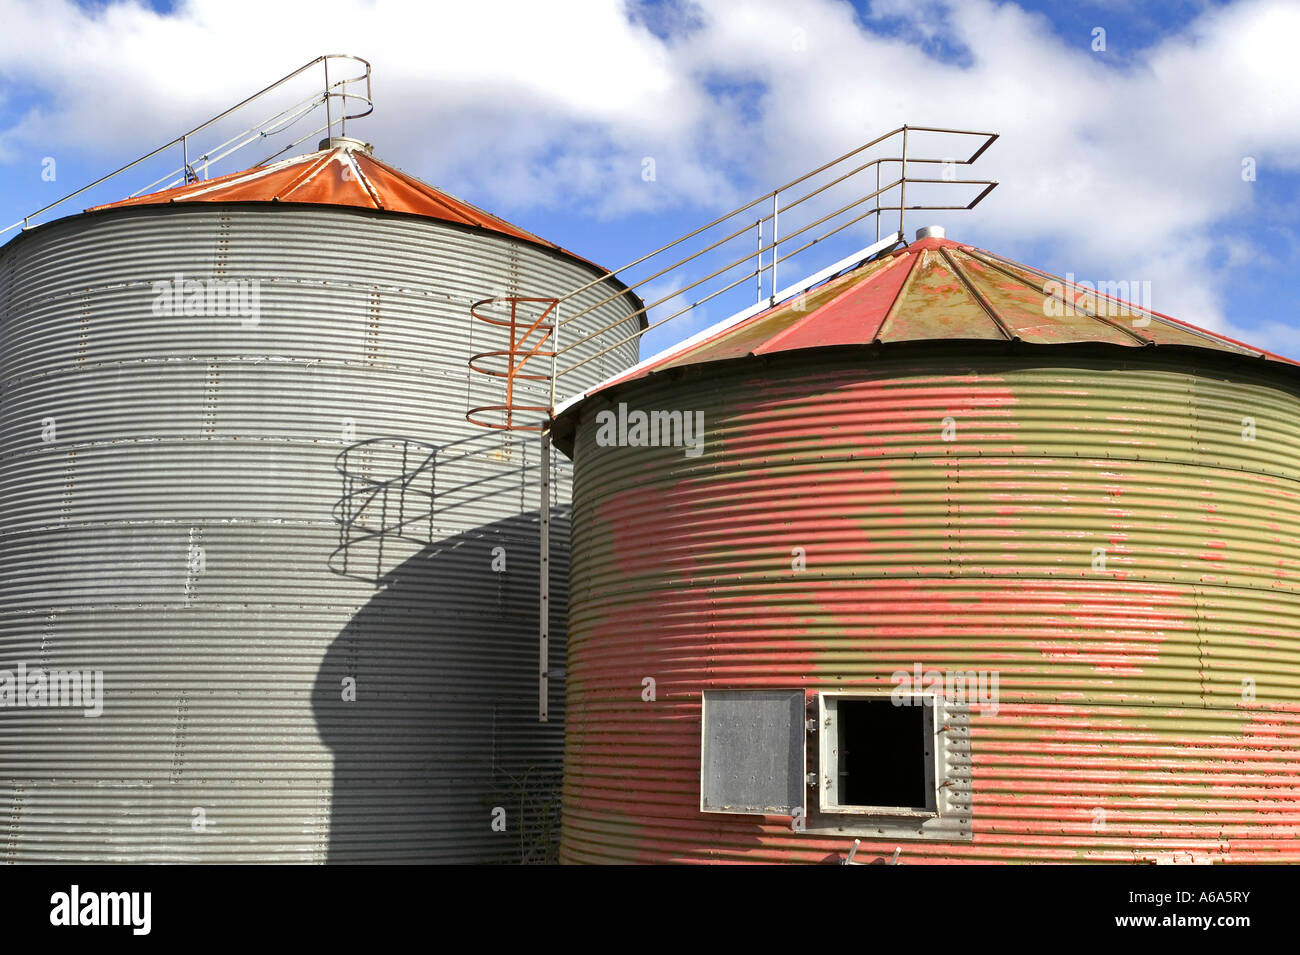 Pair of old grain drying silo s against a blue cloudy sky - Stock Image